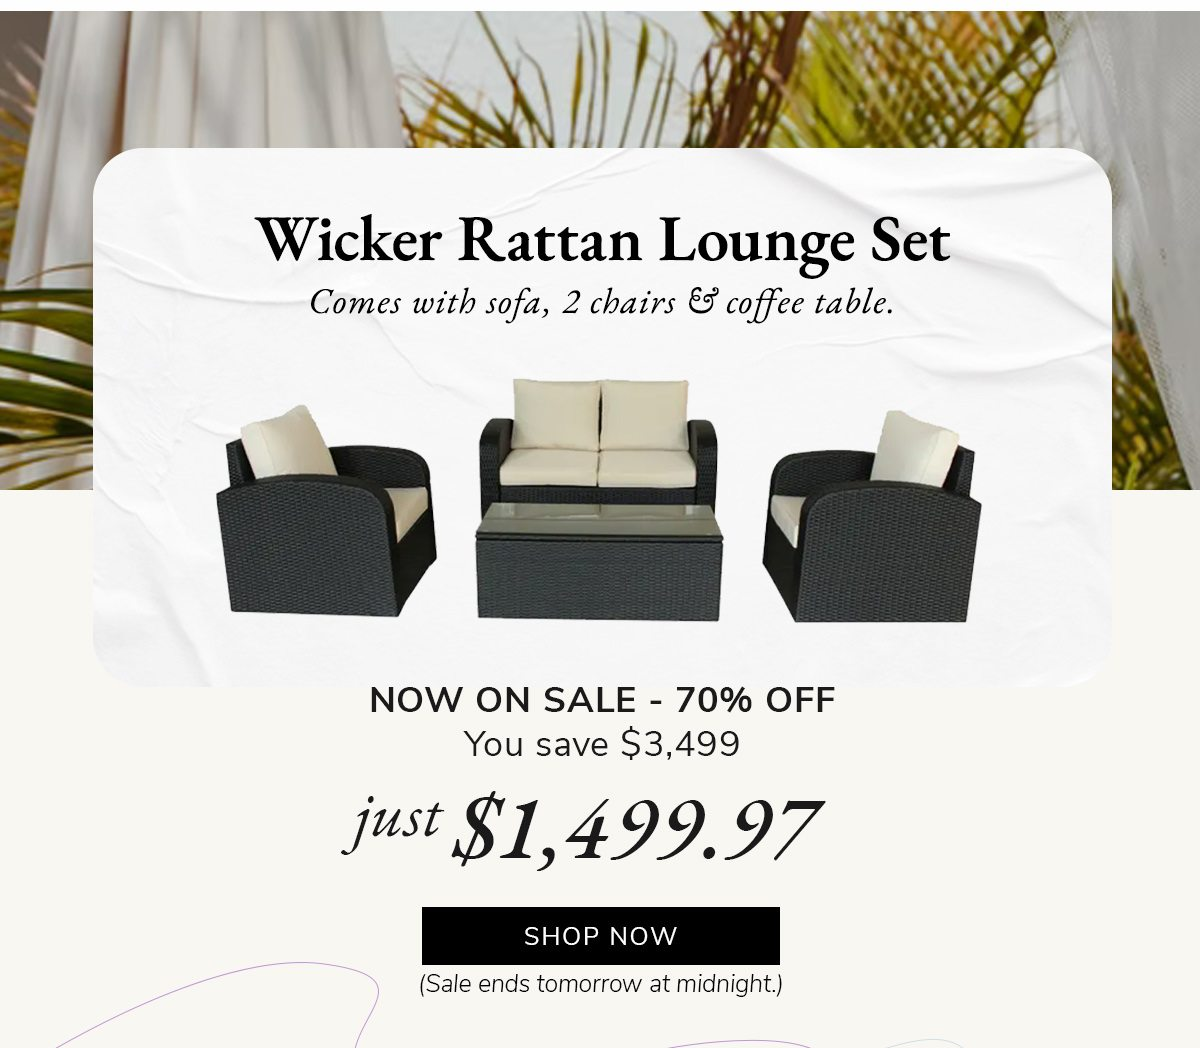 Wicker Rattan Lounge Set NOW ON SALE - 70% OFF. Just ·$1,499.97 | SHOP NOW